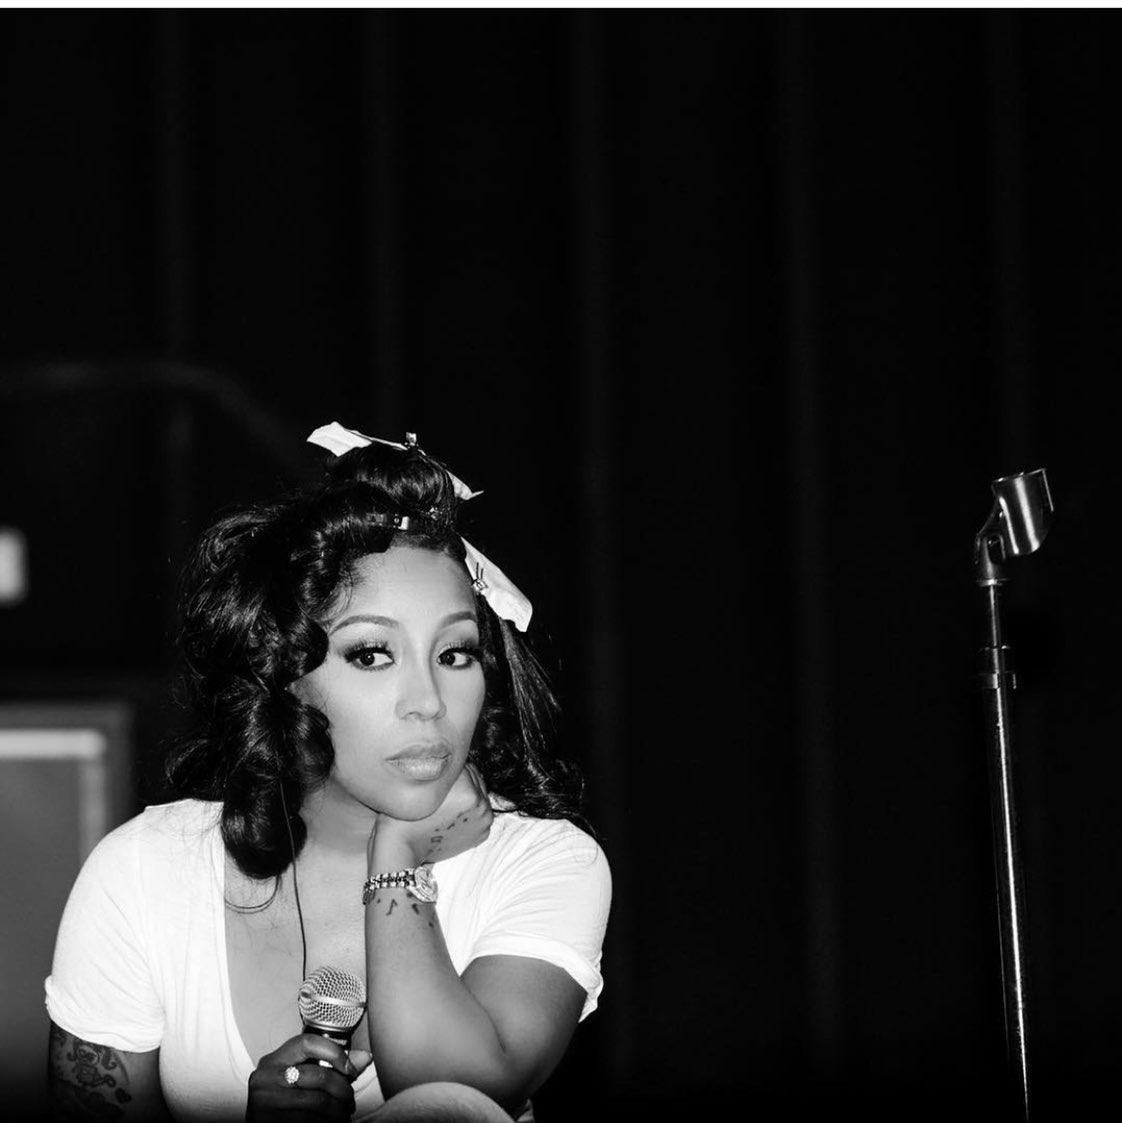 K.michelle Kimberly Clubhouse